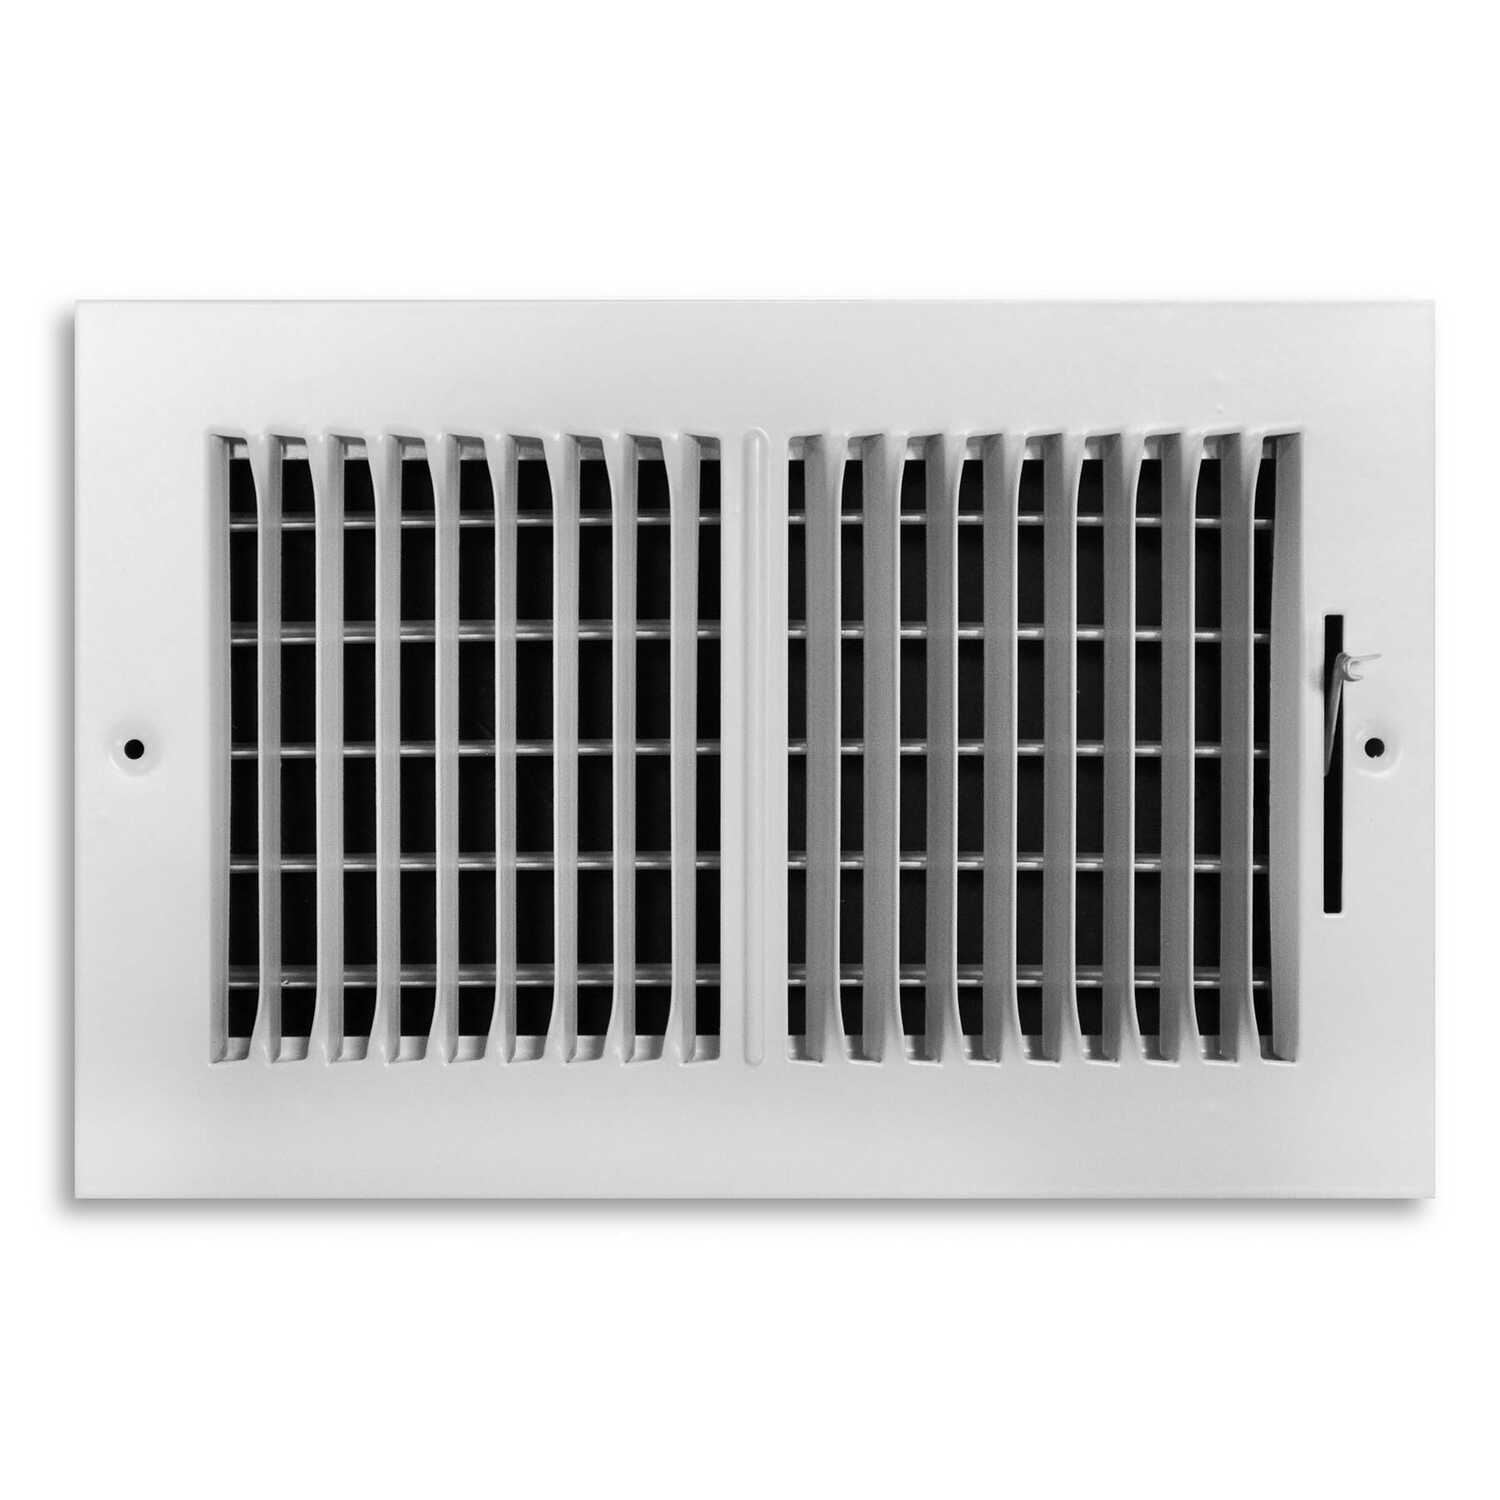 Tru Aire  1-11/16 in. D x 6 in. H 2-Way  Return Air Grille  White  Powder Coat  Steel